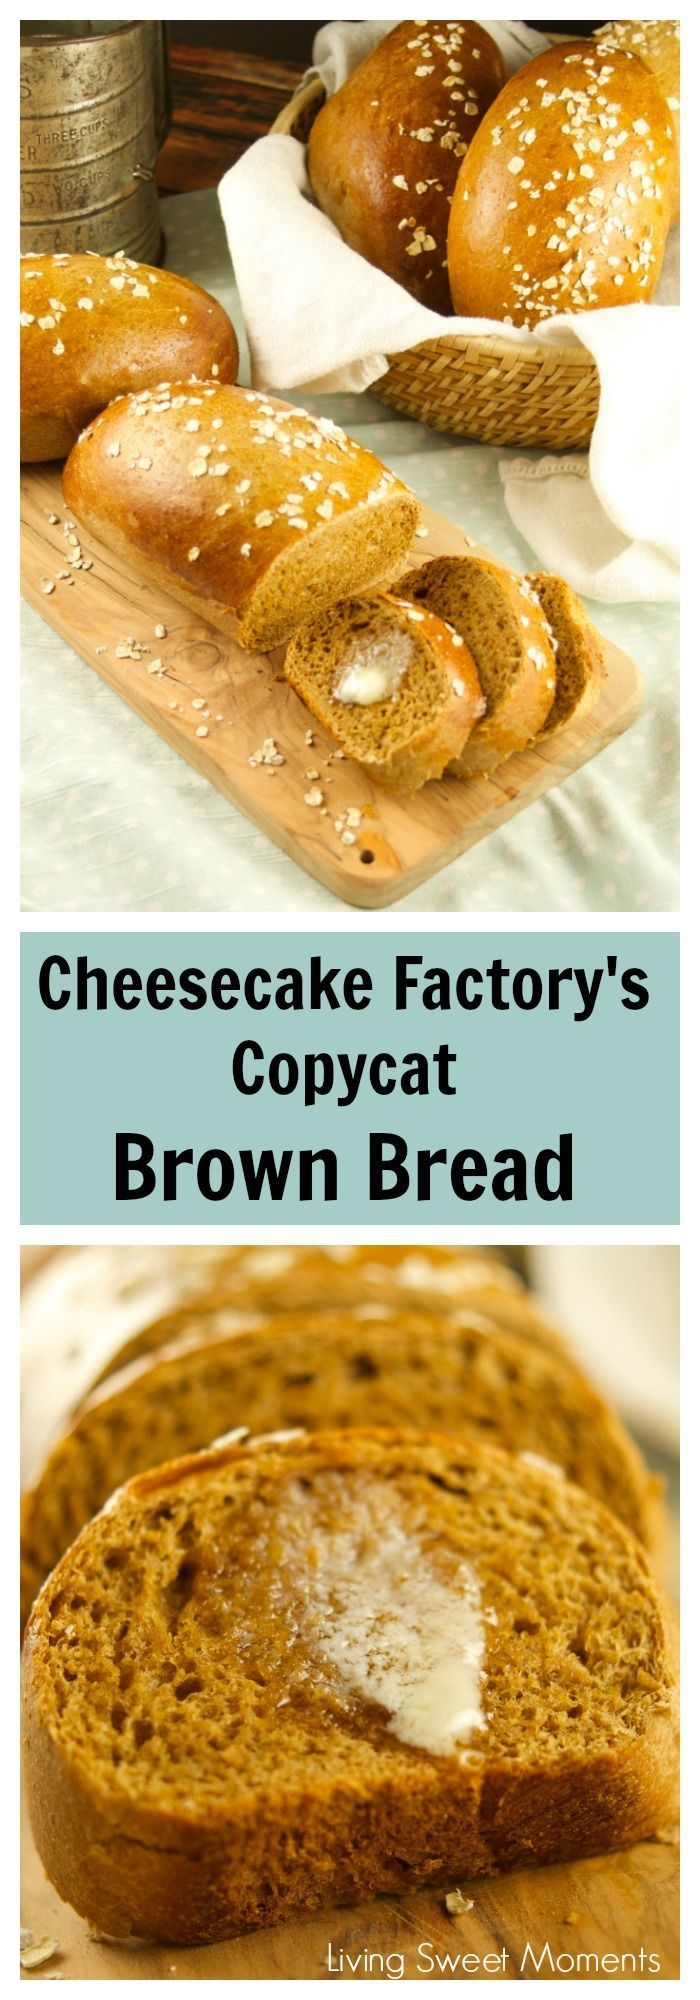 Check out how easy it is to make The Cheesecake Factory's Copycat Brown Bread recipe with honey and oats. Delicious, soft and just like the real thing. More on http://livingsweetmoments.com